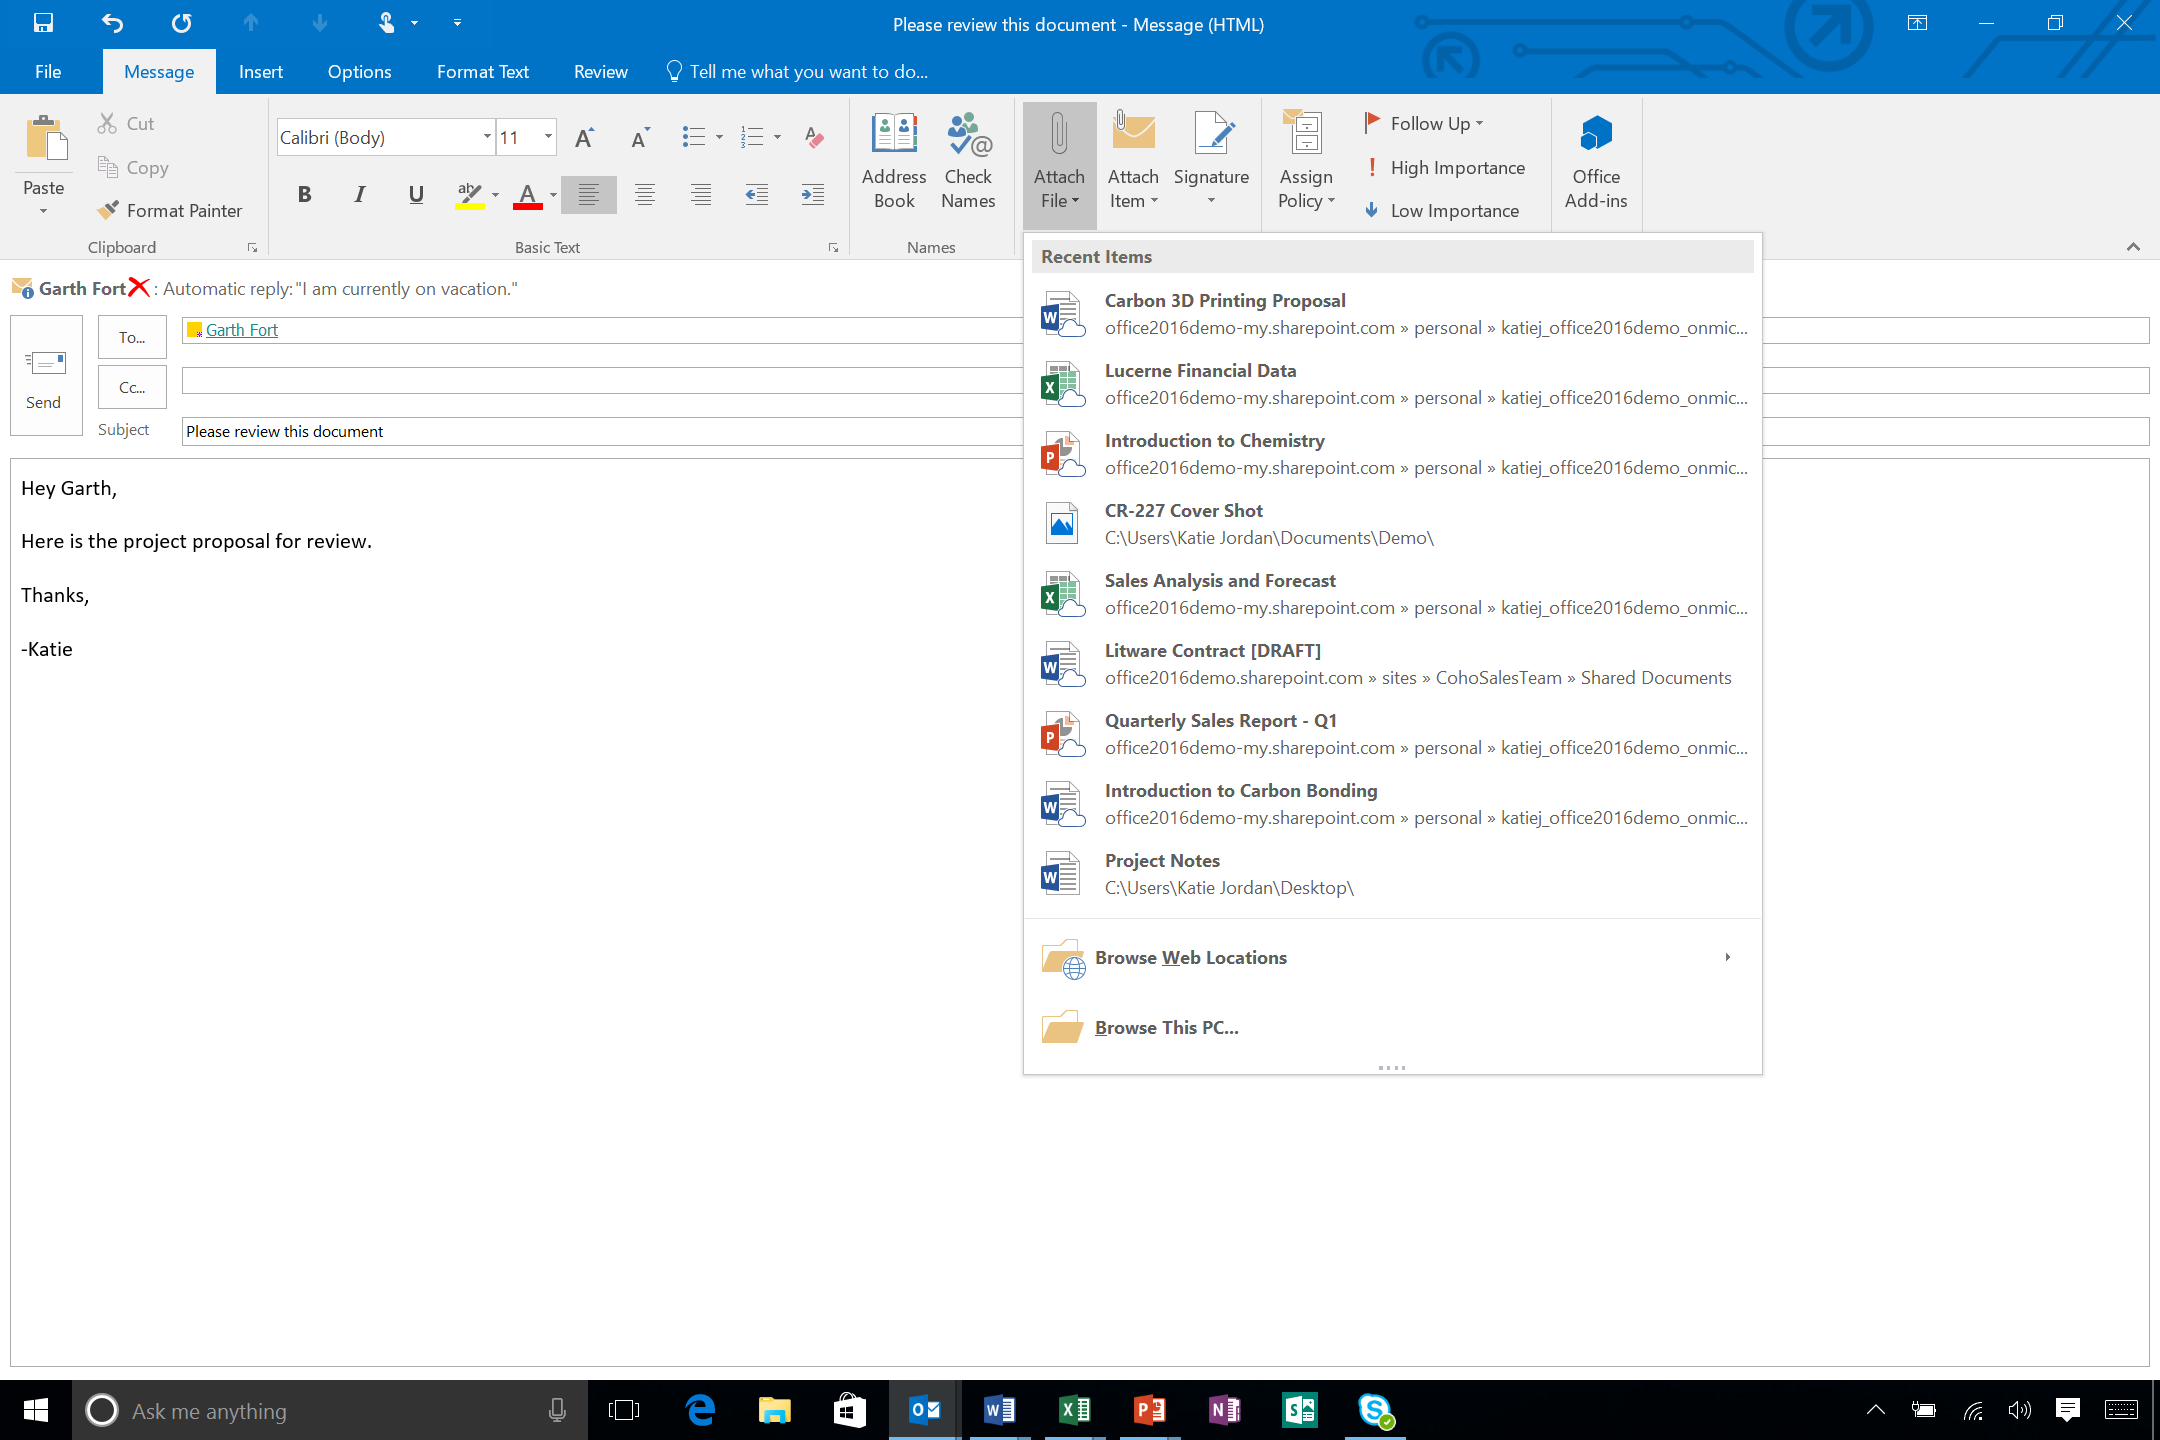 Outlook shows recent documents in its attachments button.